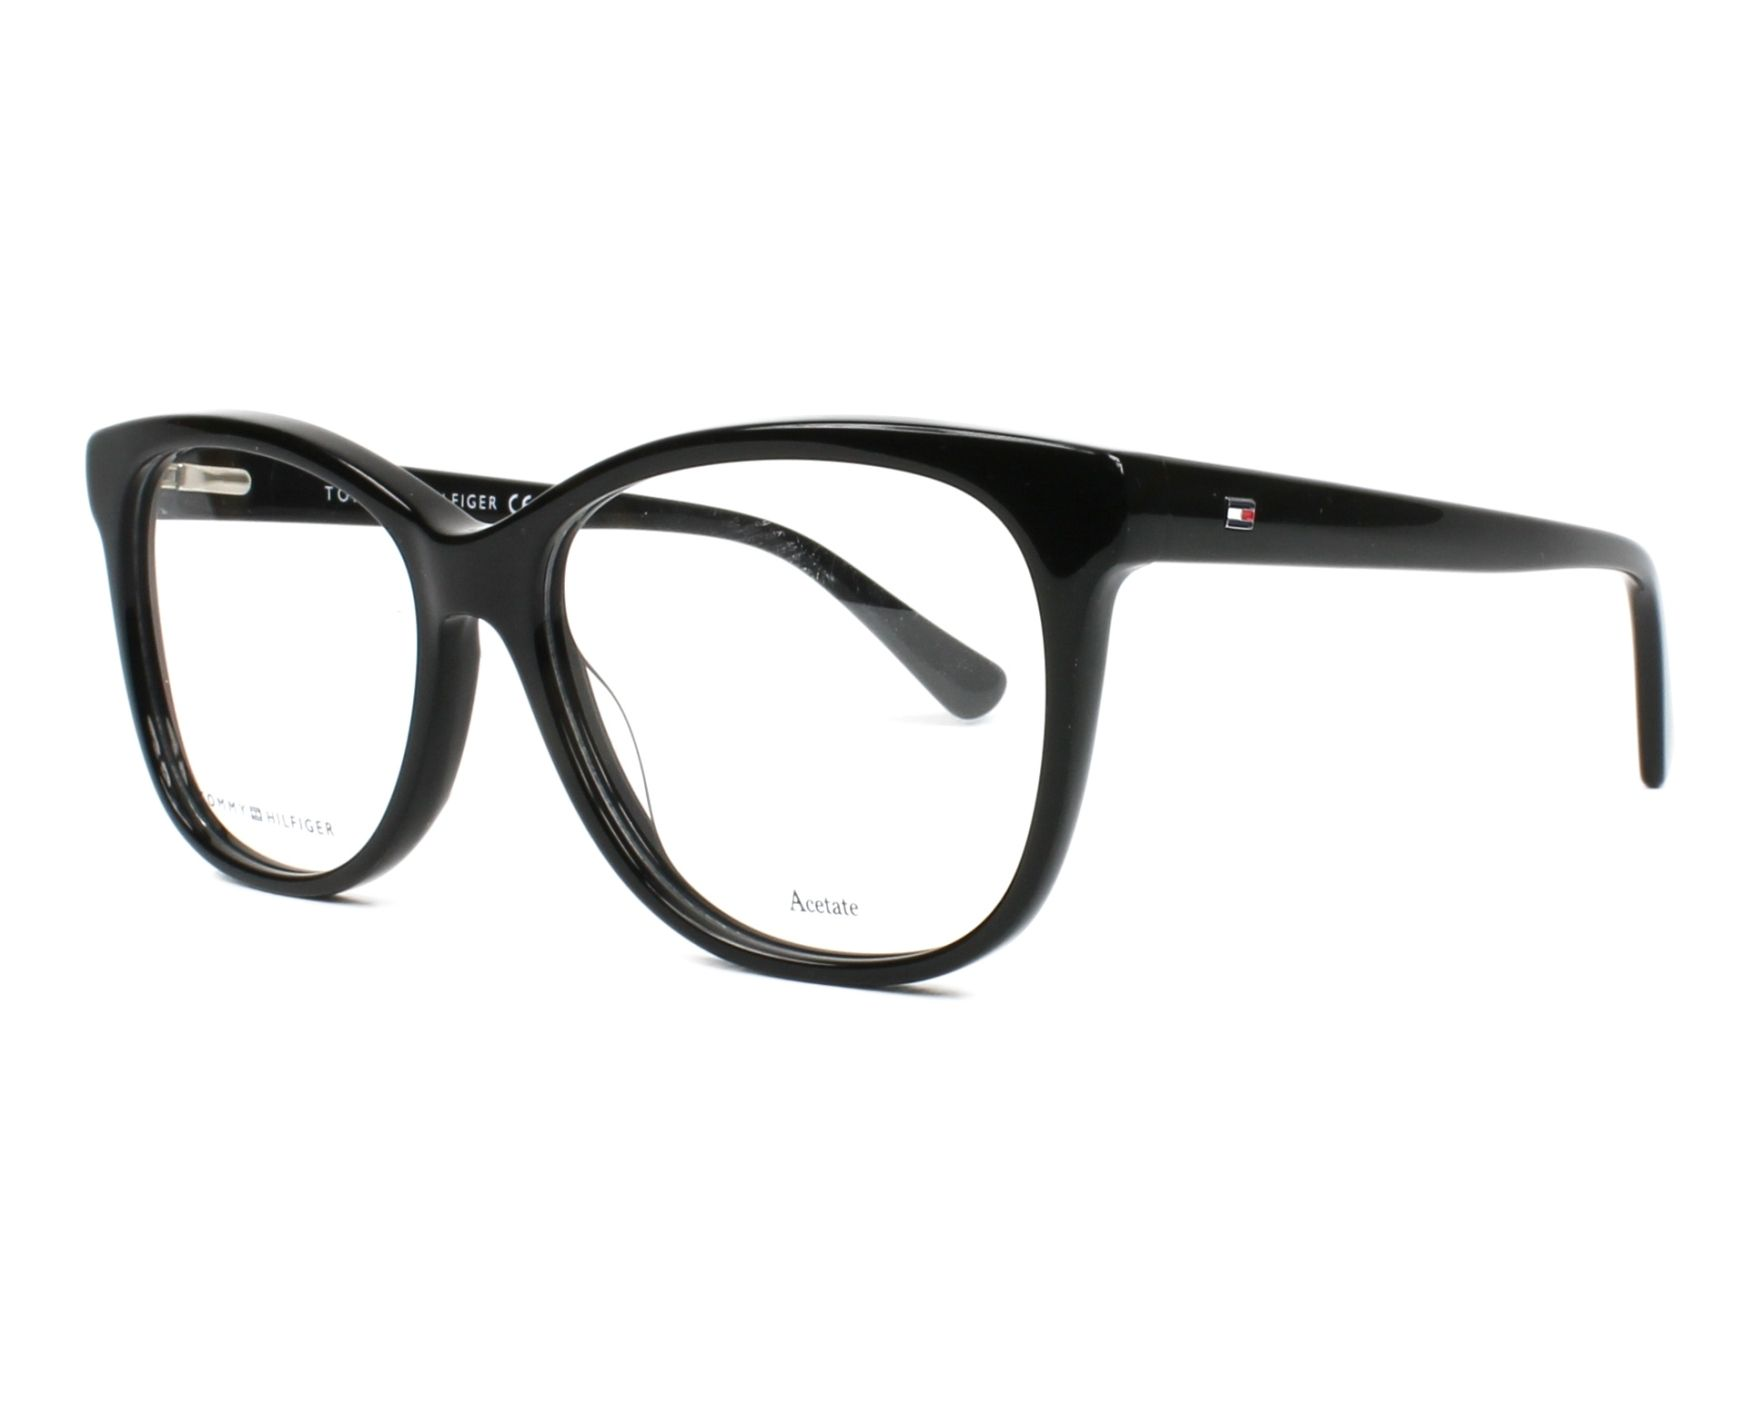 eyeglasses Tommy Hilfiger TH-1530 807 53-15 Black profile view